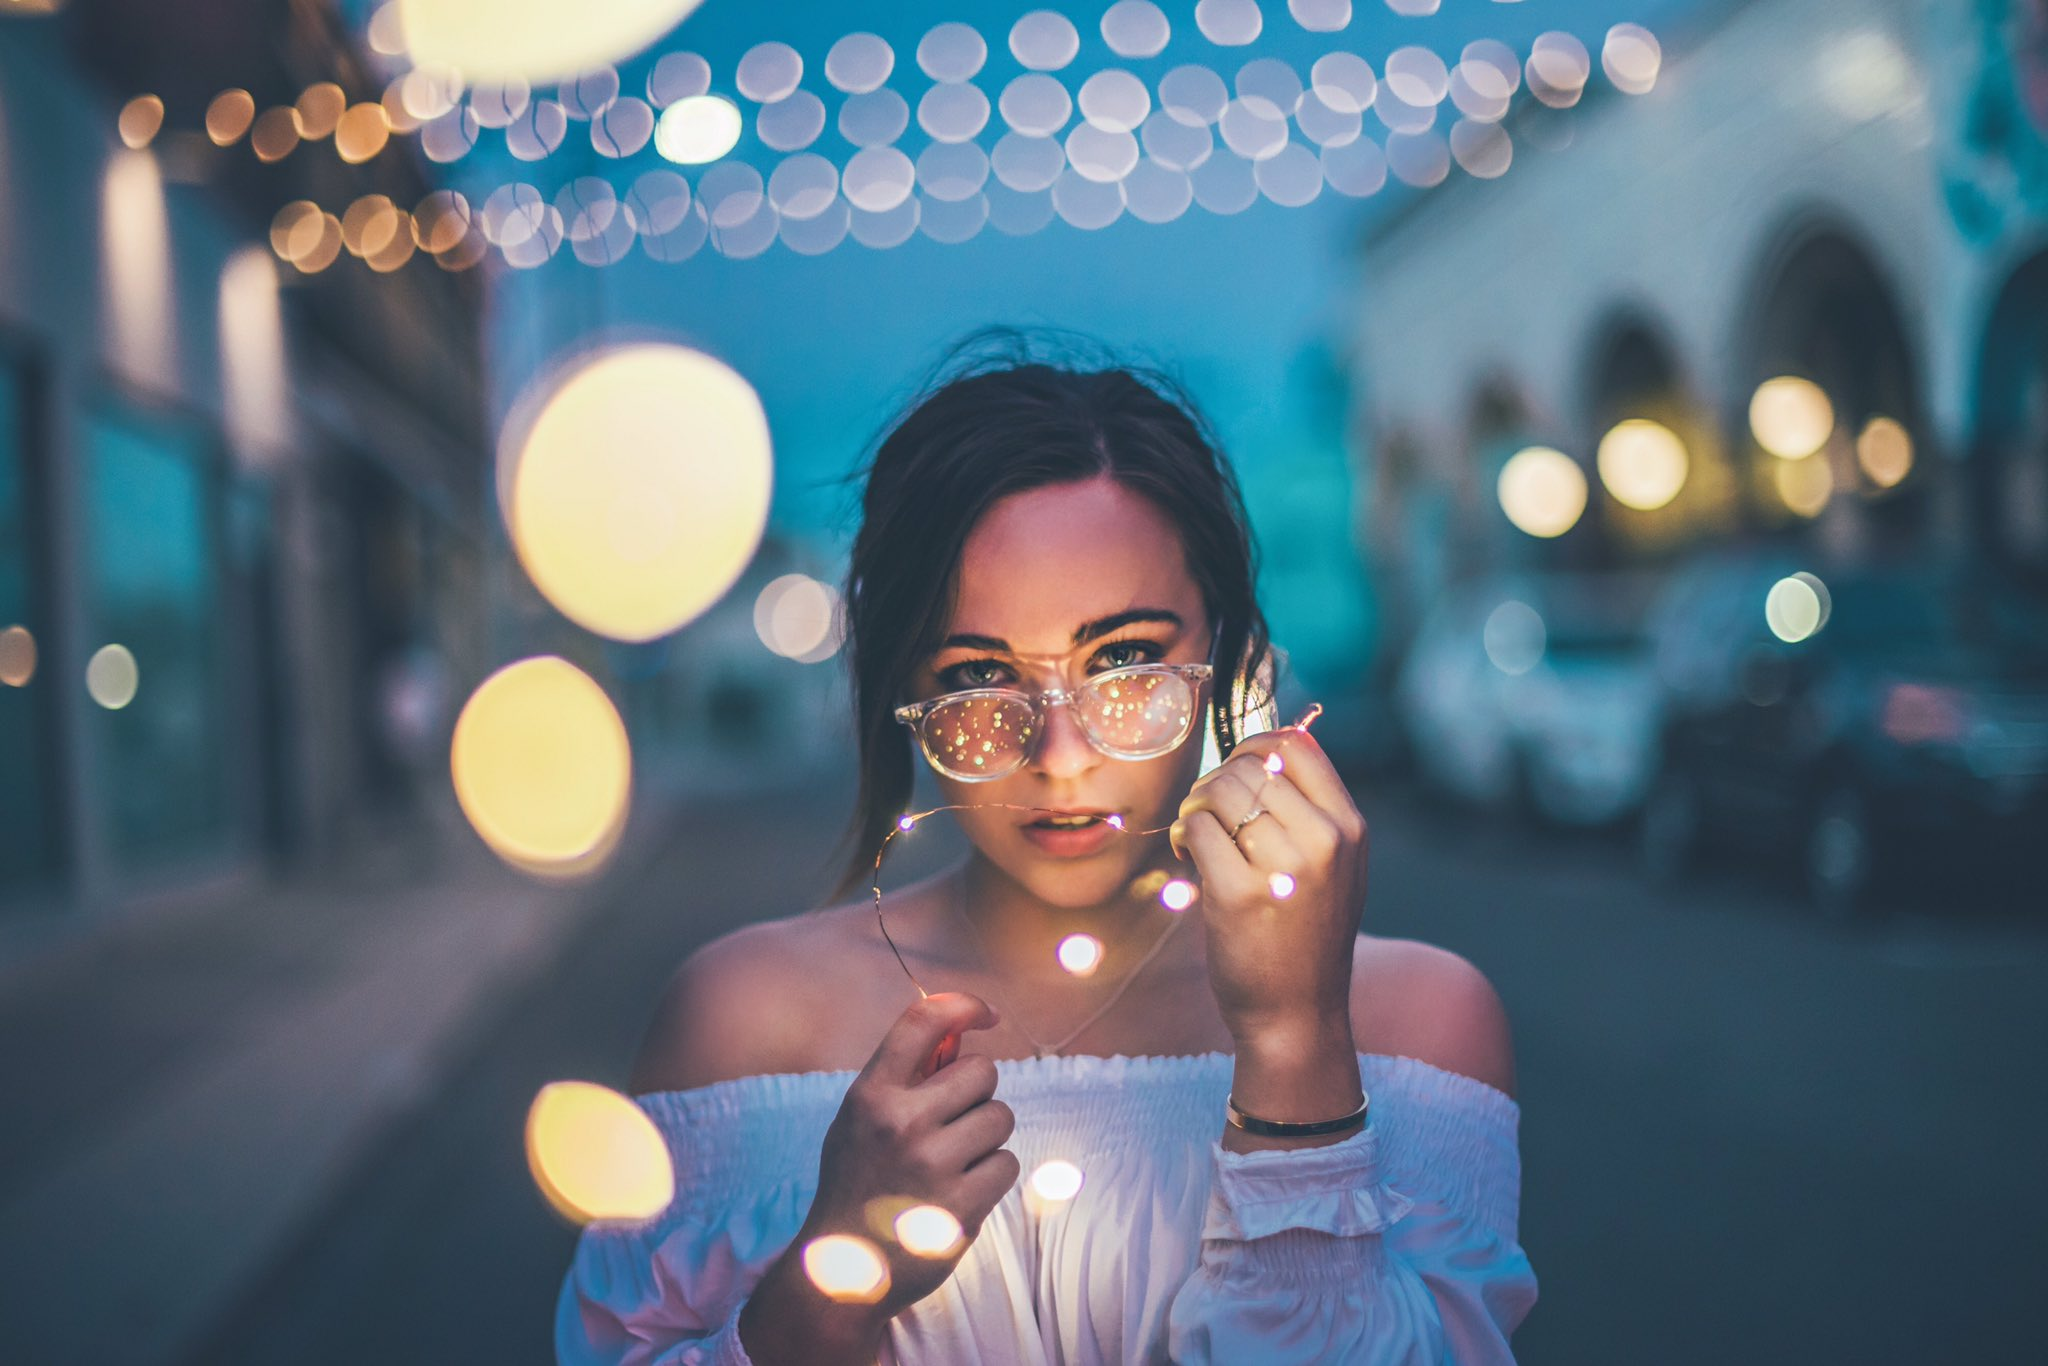 Brandon Woelfel On Twitter Quot Photo Of Me Taking A Photo